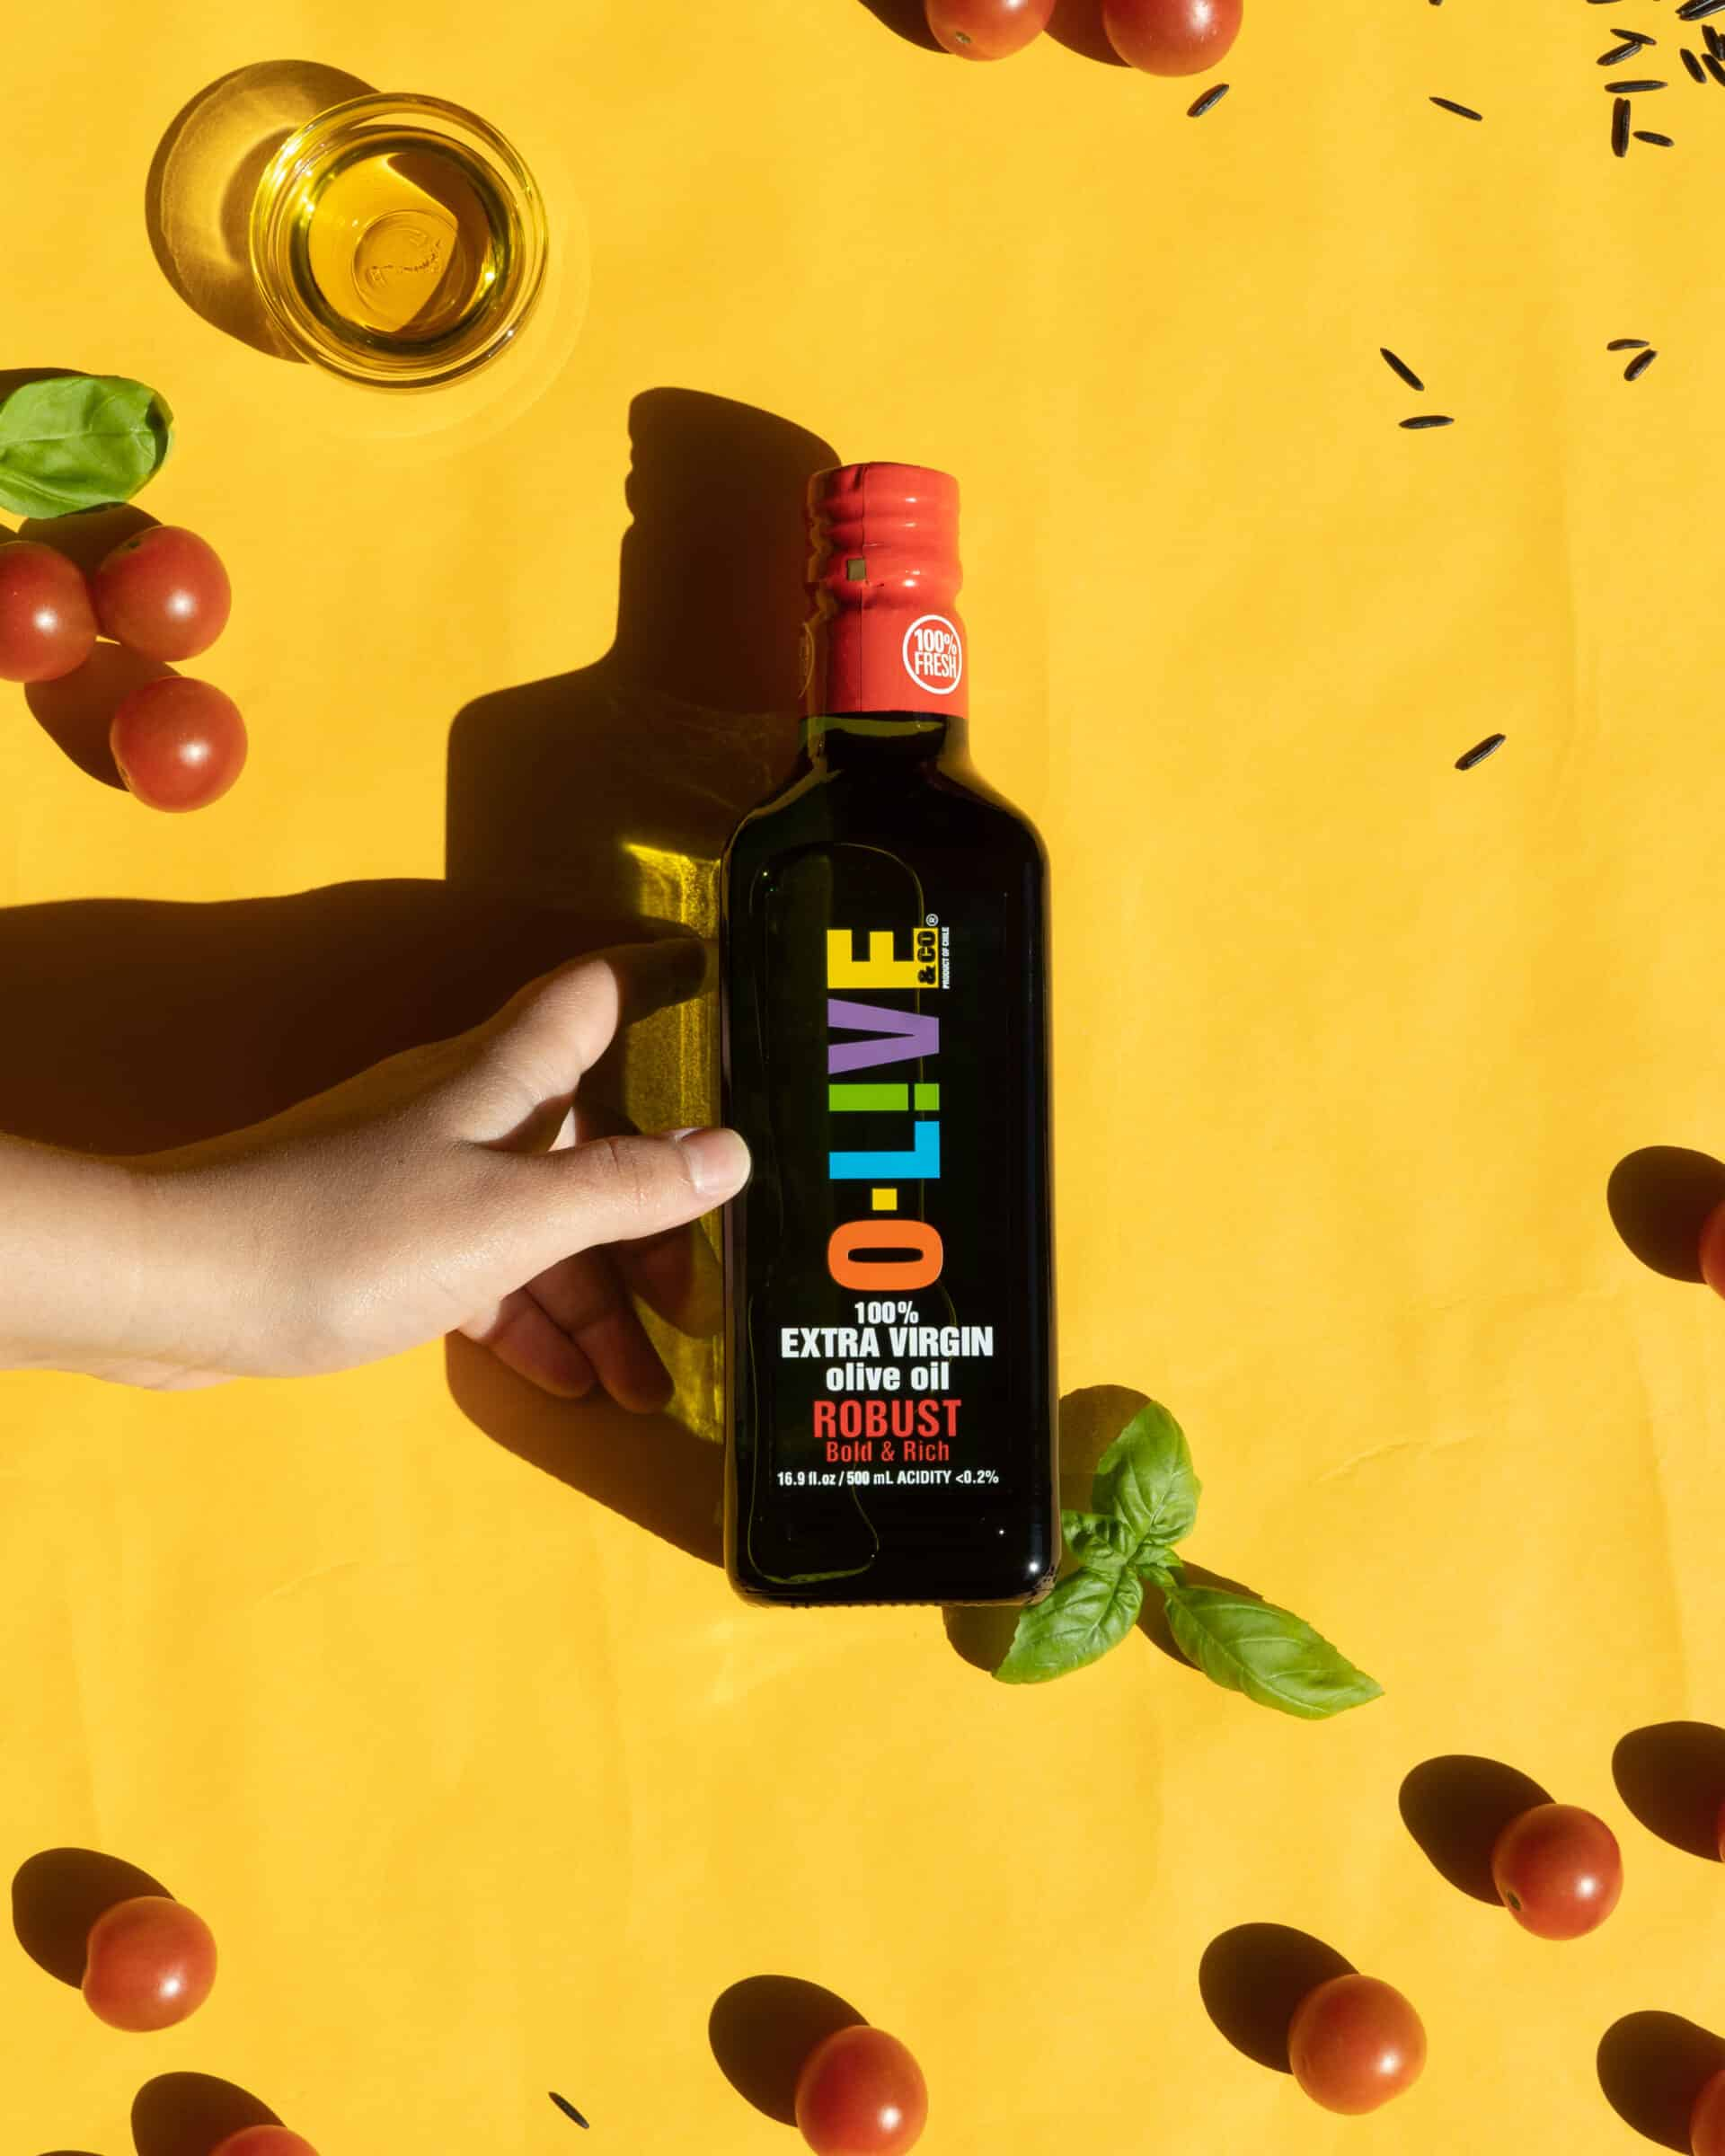 A bottle of olive oil on a yellow backdrop.